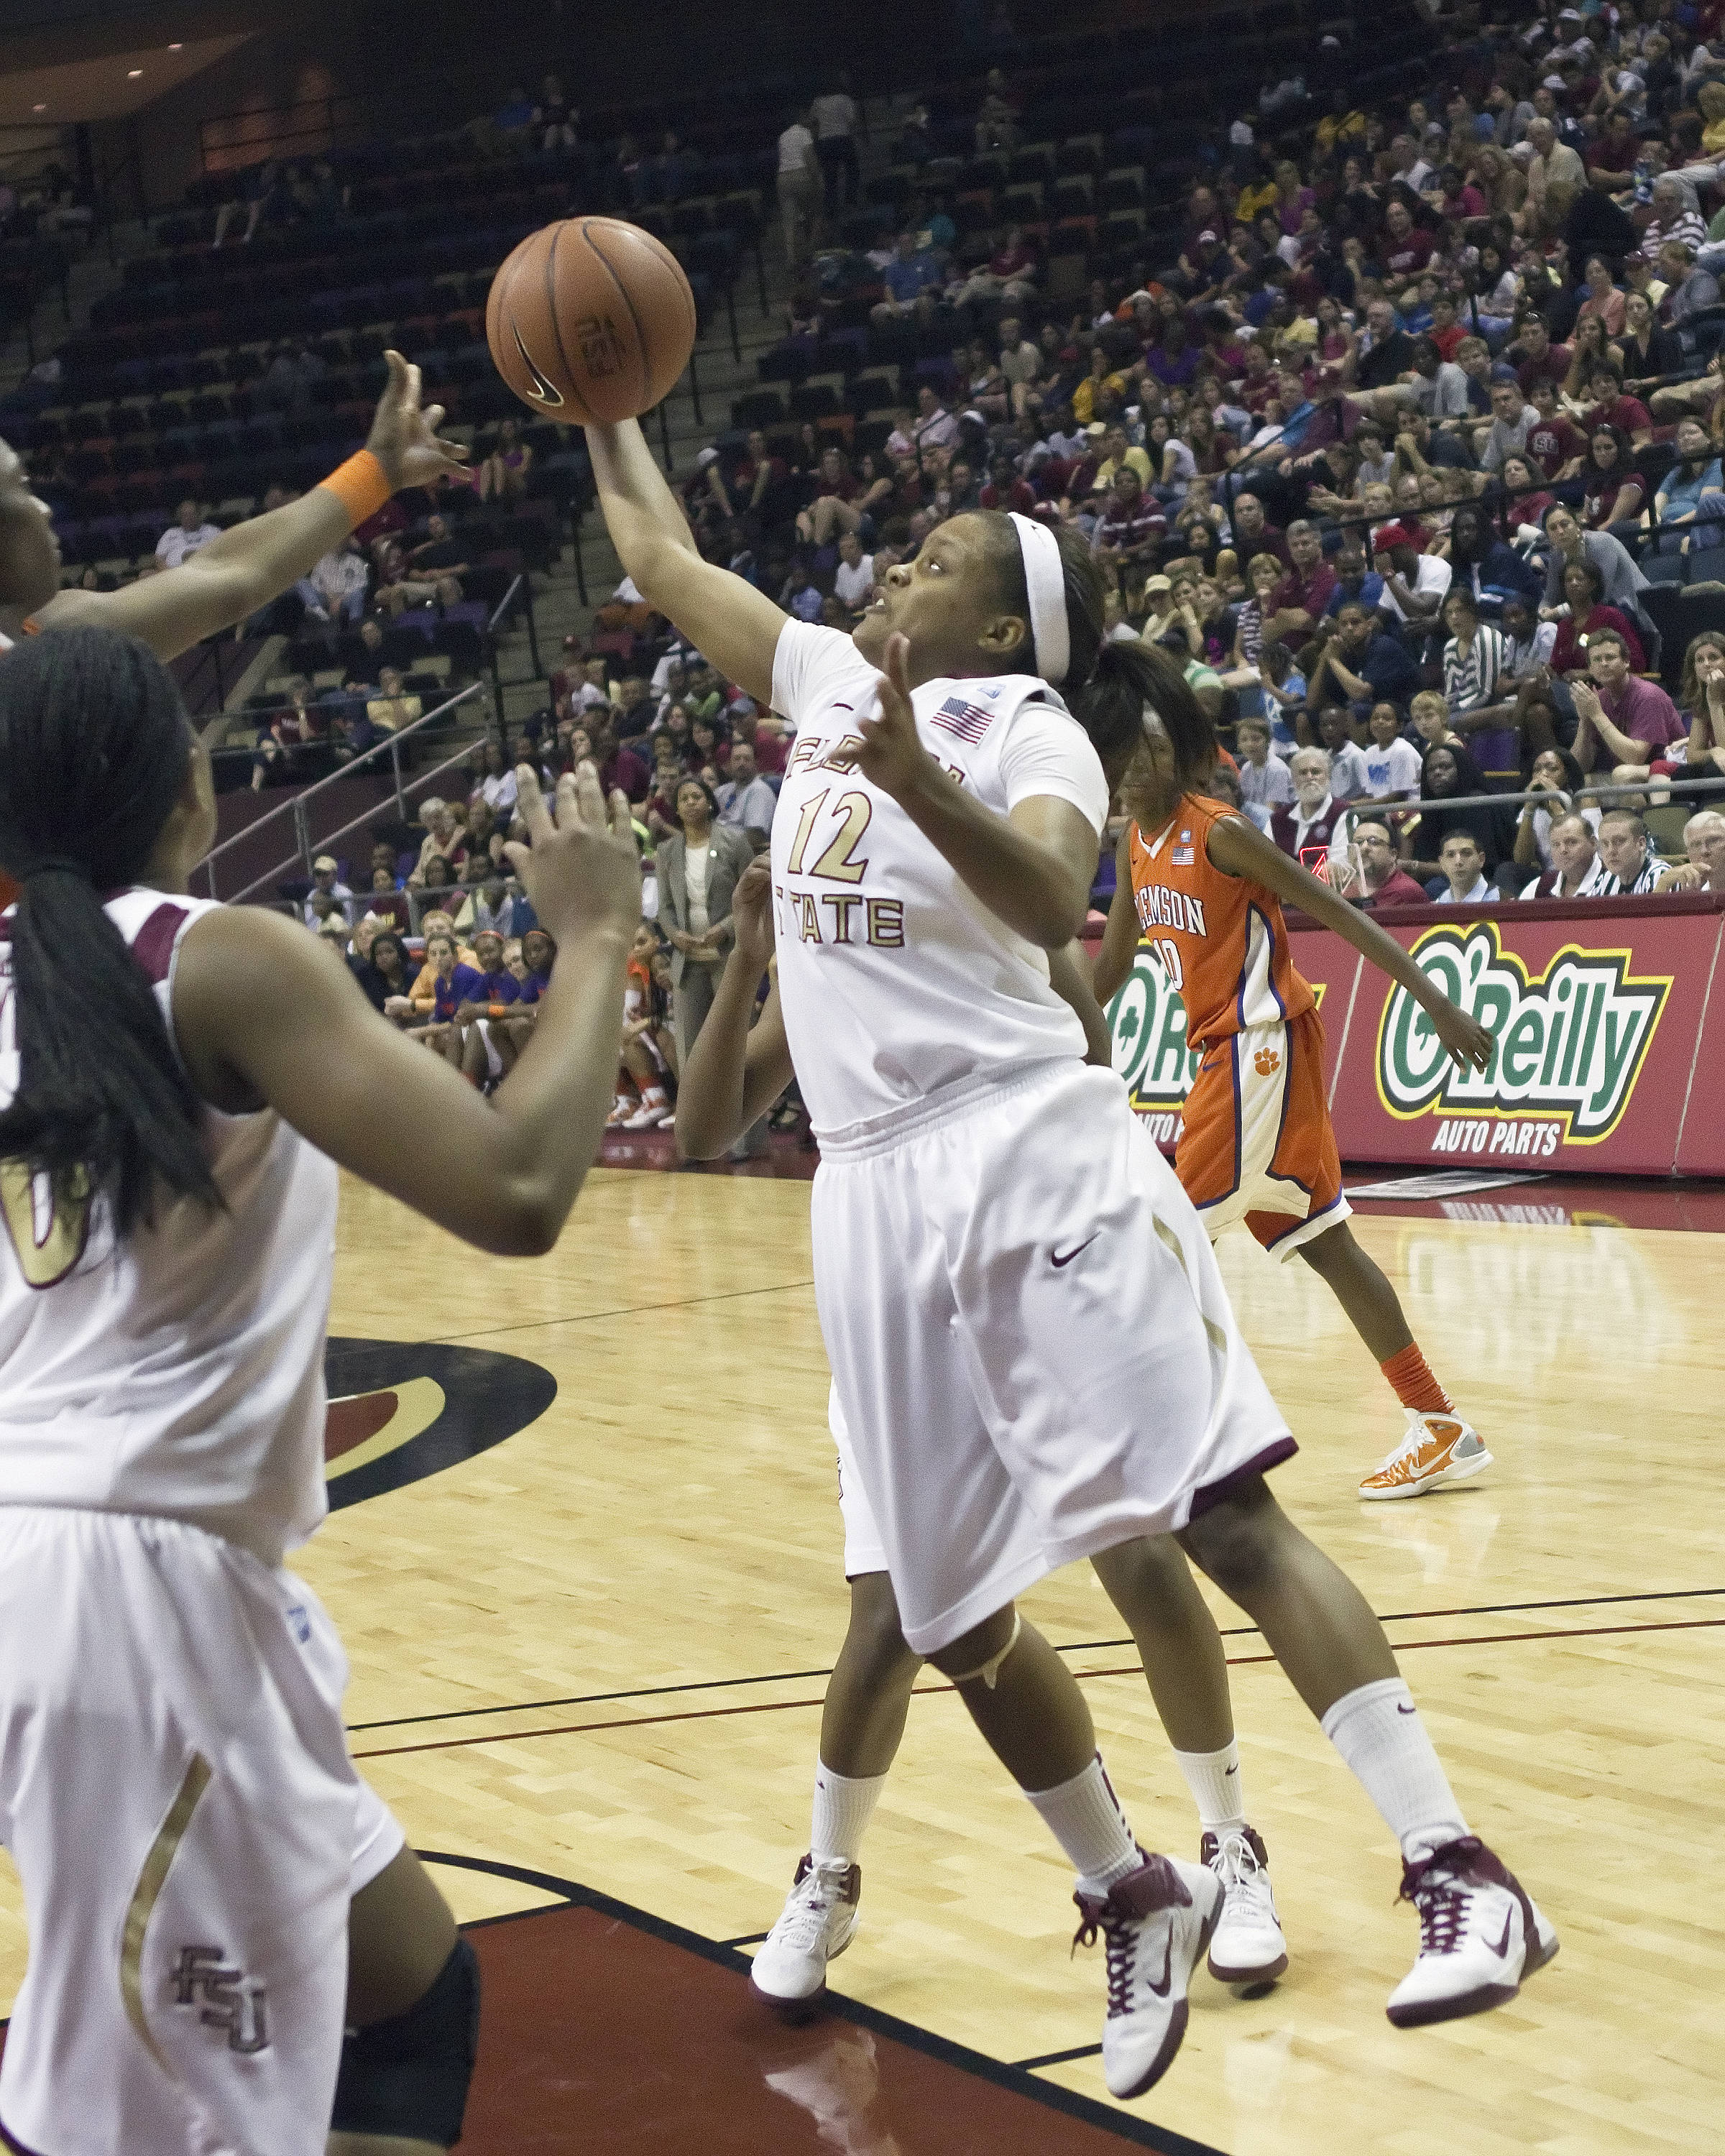 FSU vs Clemson- 02//27/11 - Courtney Ward (12)